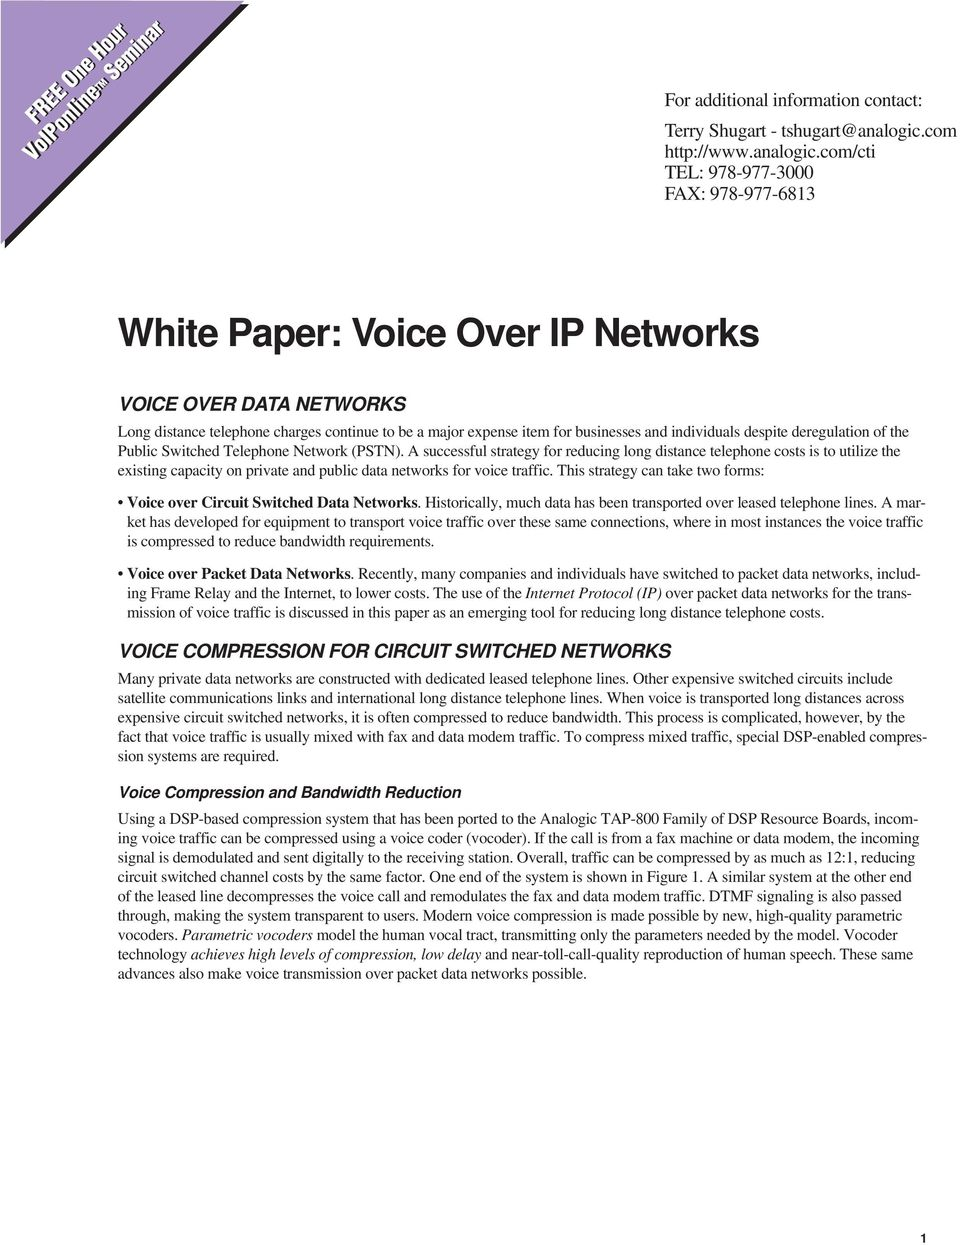 com/cti TEL: 978-977-3000 FAX: 978-977-6813 White Paper: Voice Over IP Networks VOICE OVER DATA NETWORKS Long distance telephone charges continue to be a major expense item for businesses and